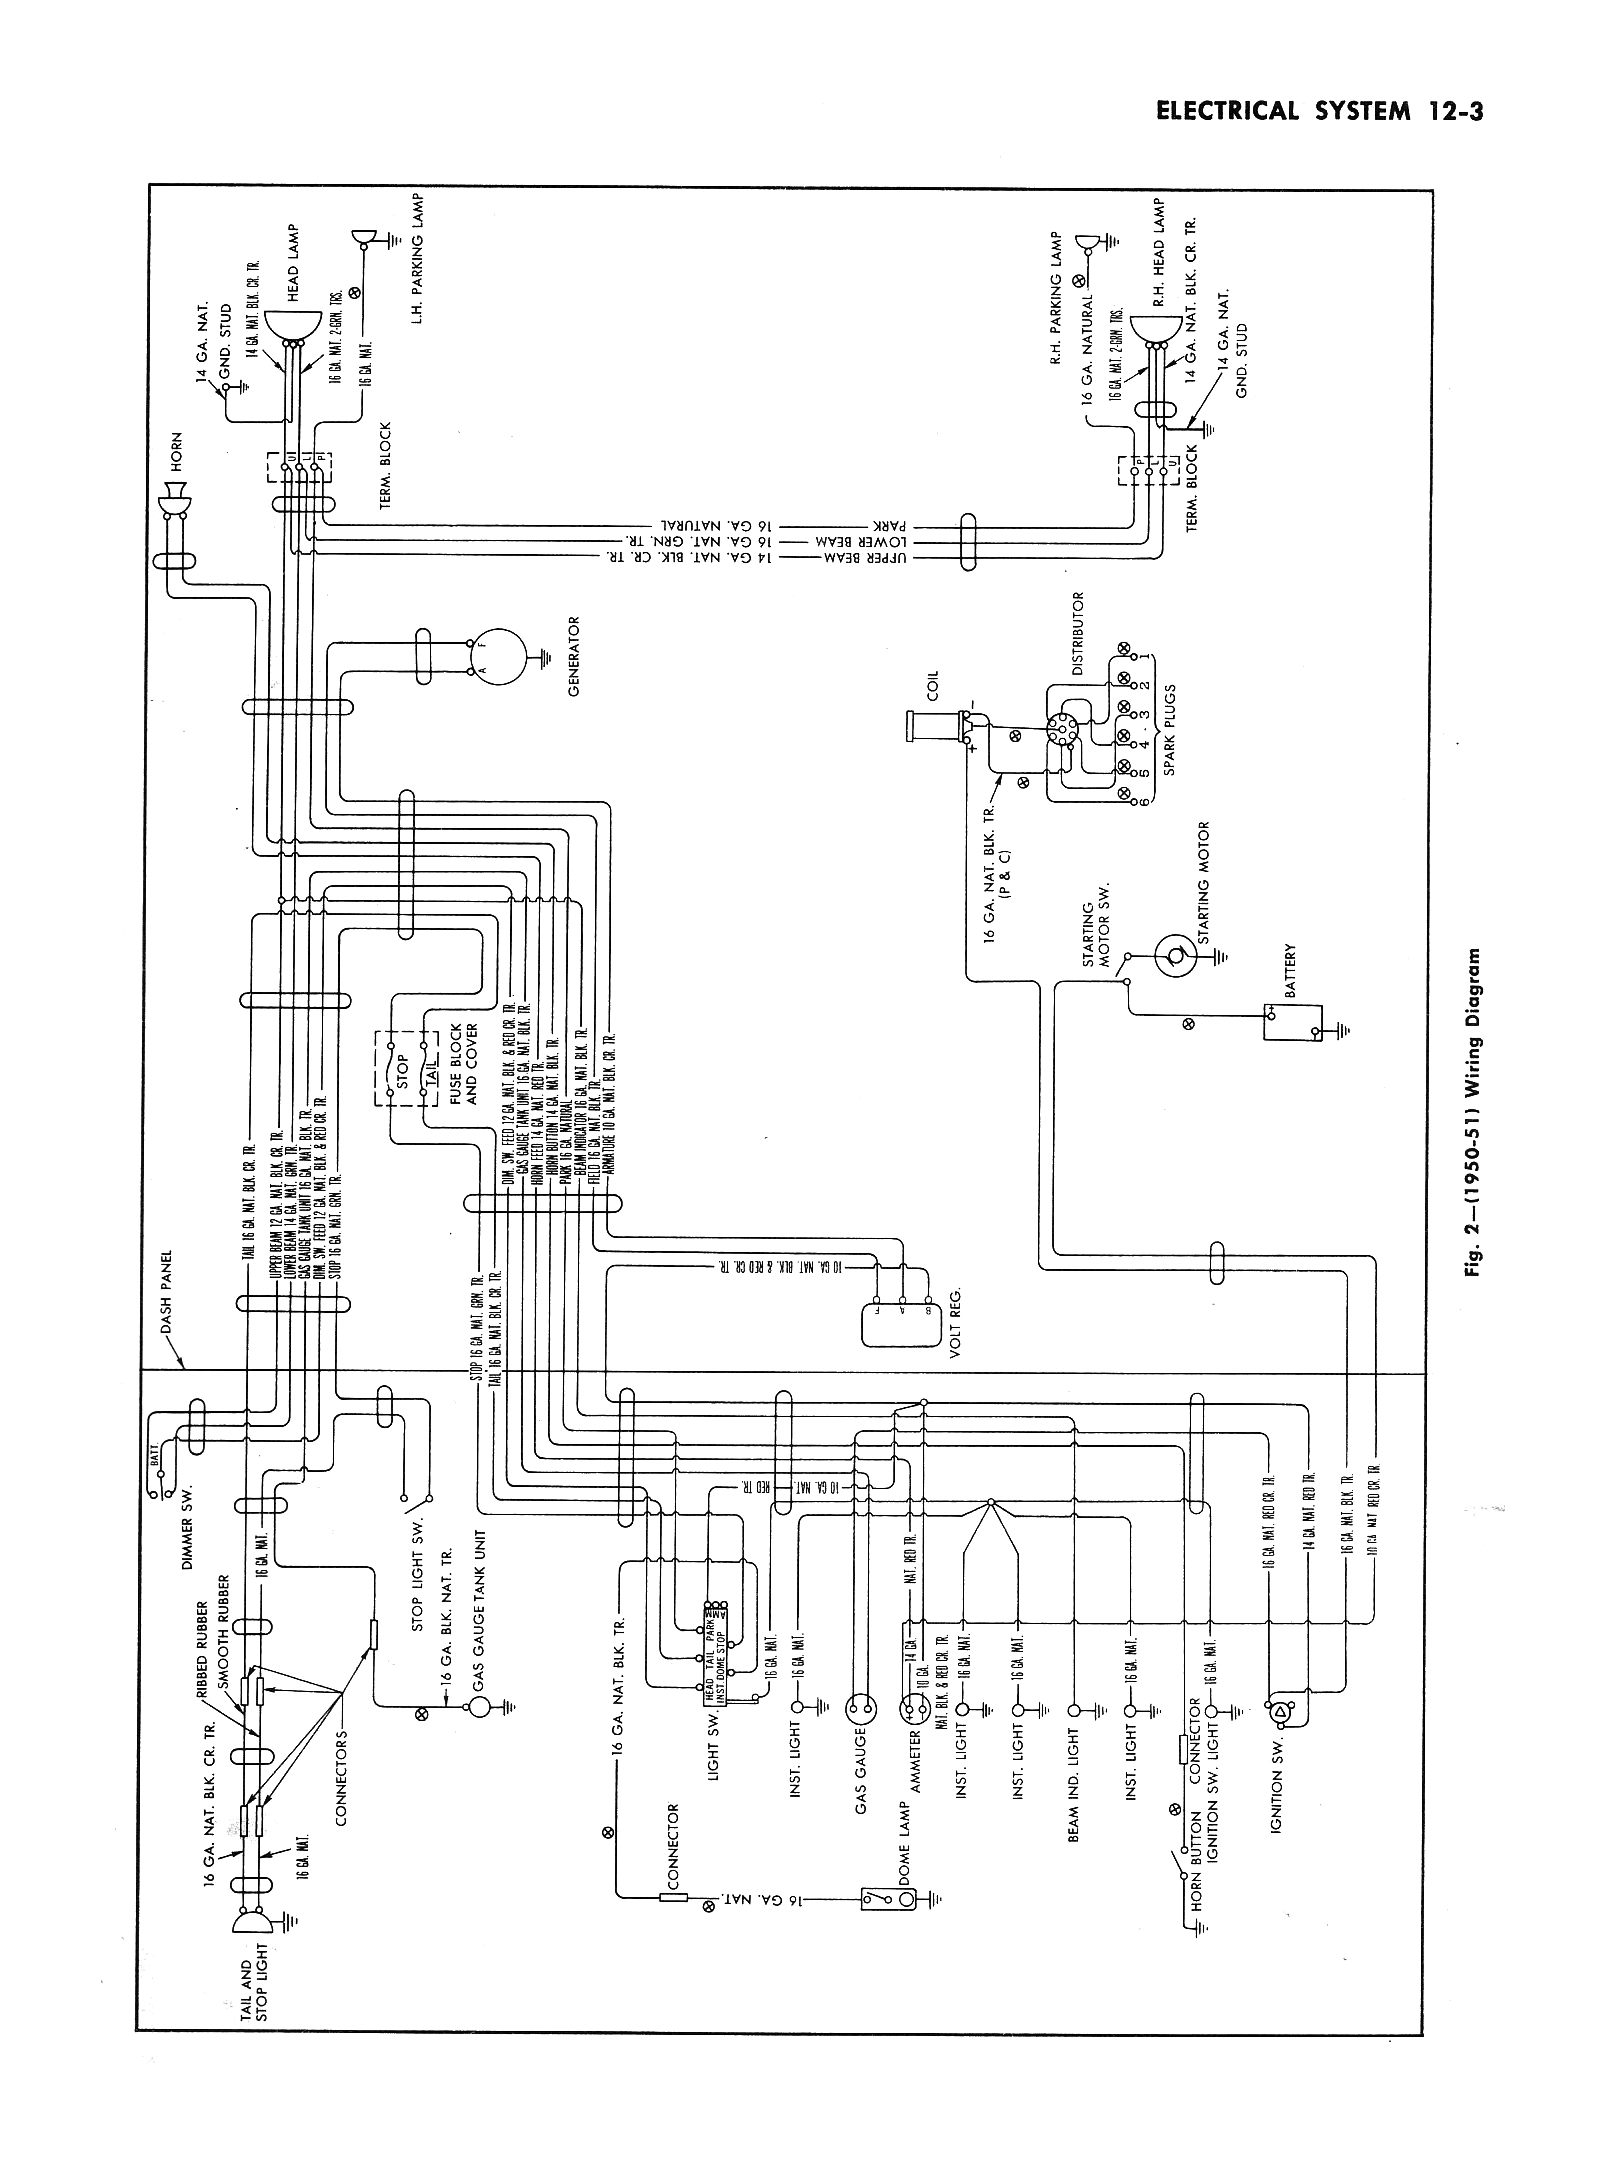 hight resolution of 1951 chevy pickup wiring diagram schema wiring diagram 6 volt wiring harness 51 f1